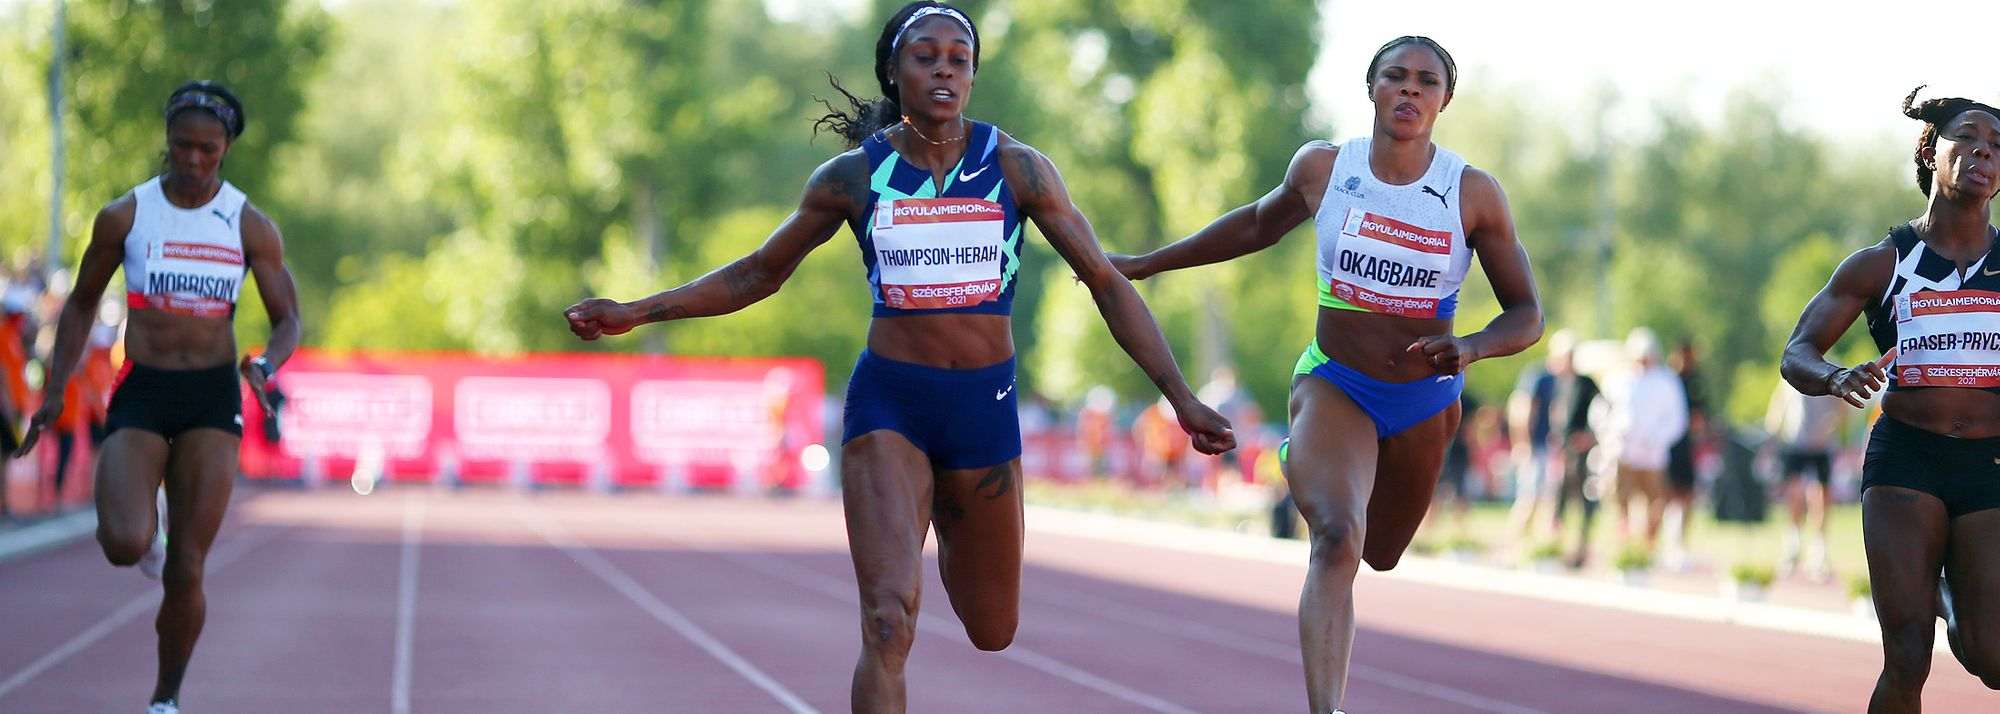 Thompson-Herah clocks 10.71, Bol wins 400m hurdles in 52.81 and Simbine breaks African 100m record with 9.84